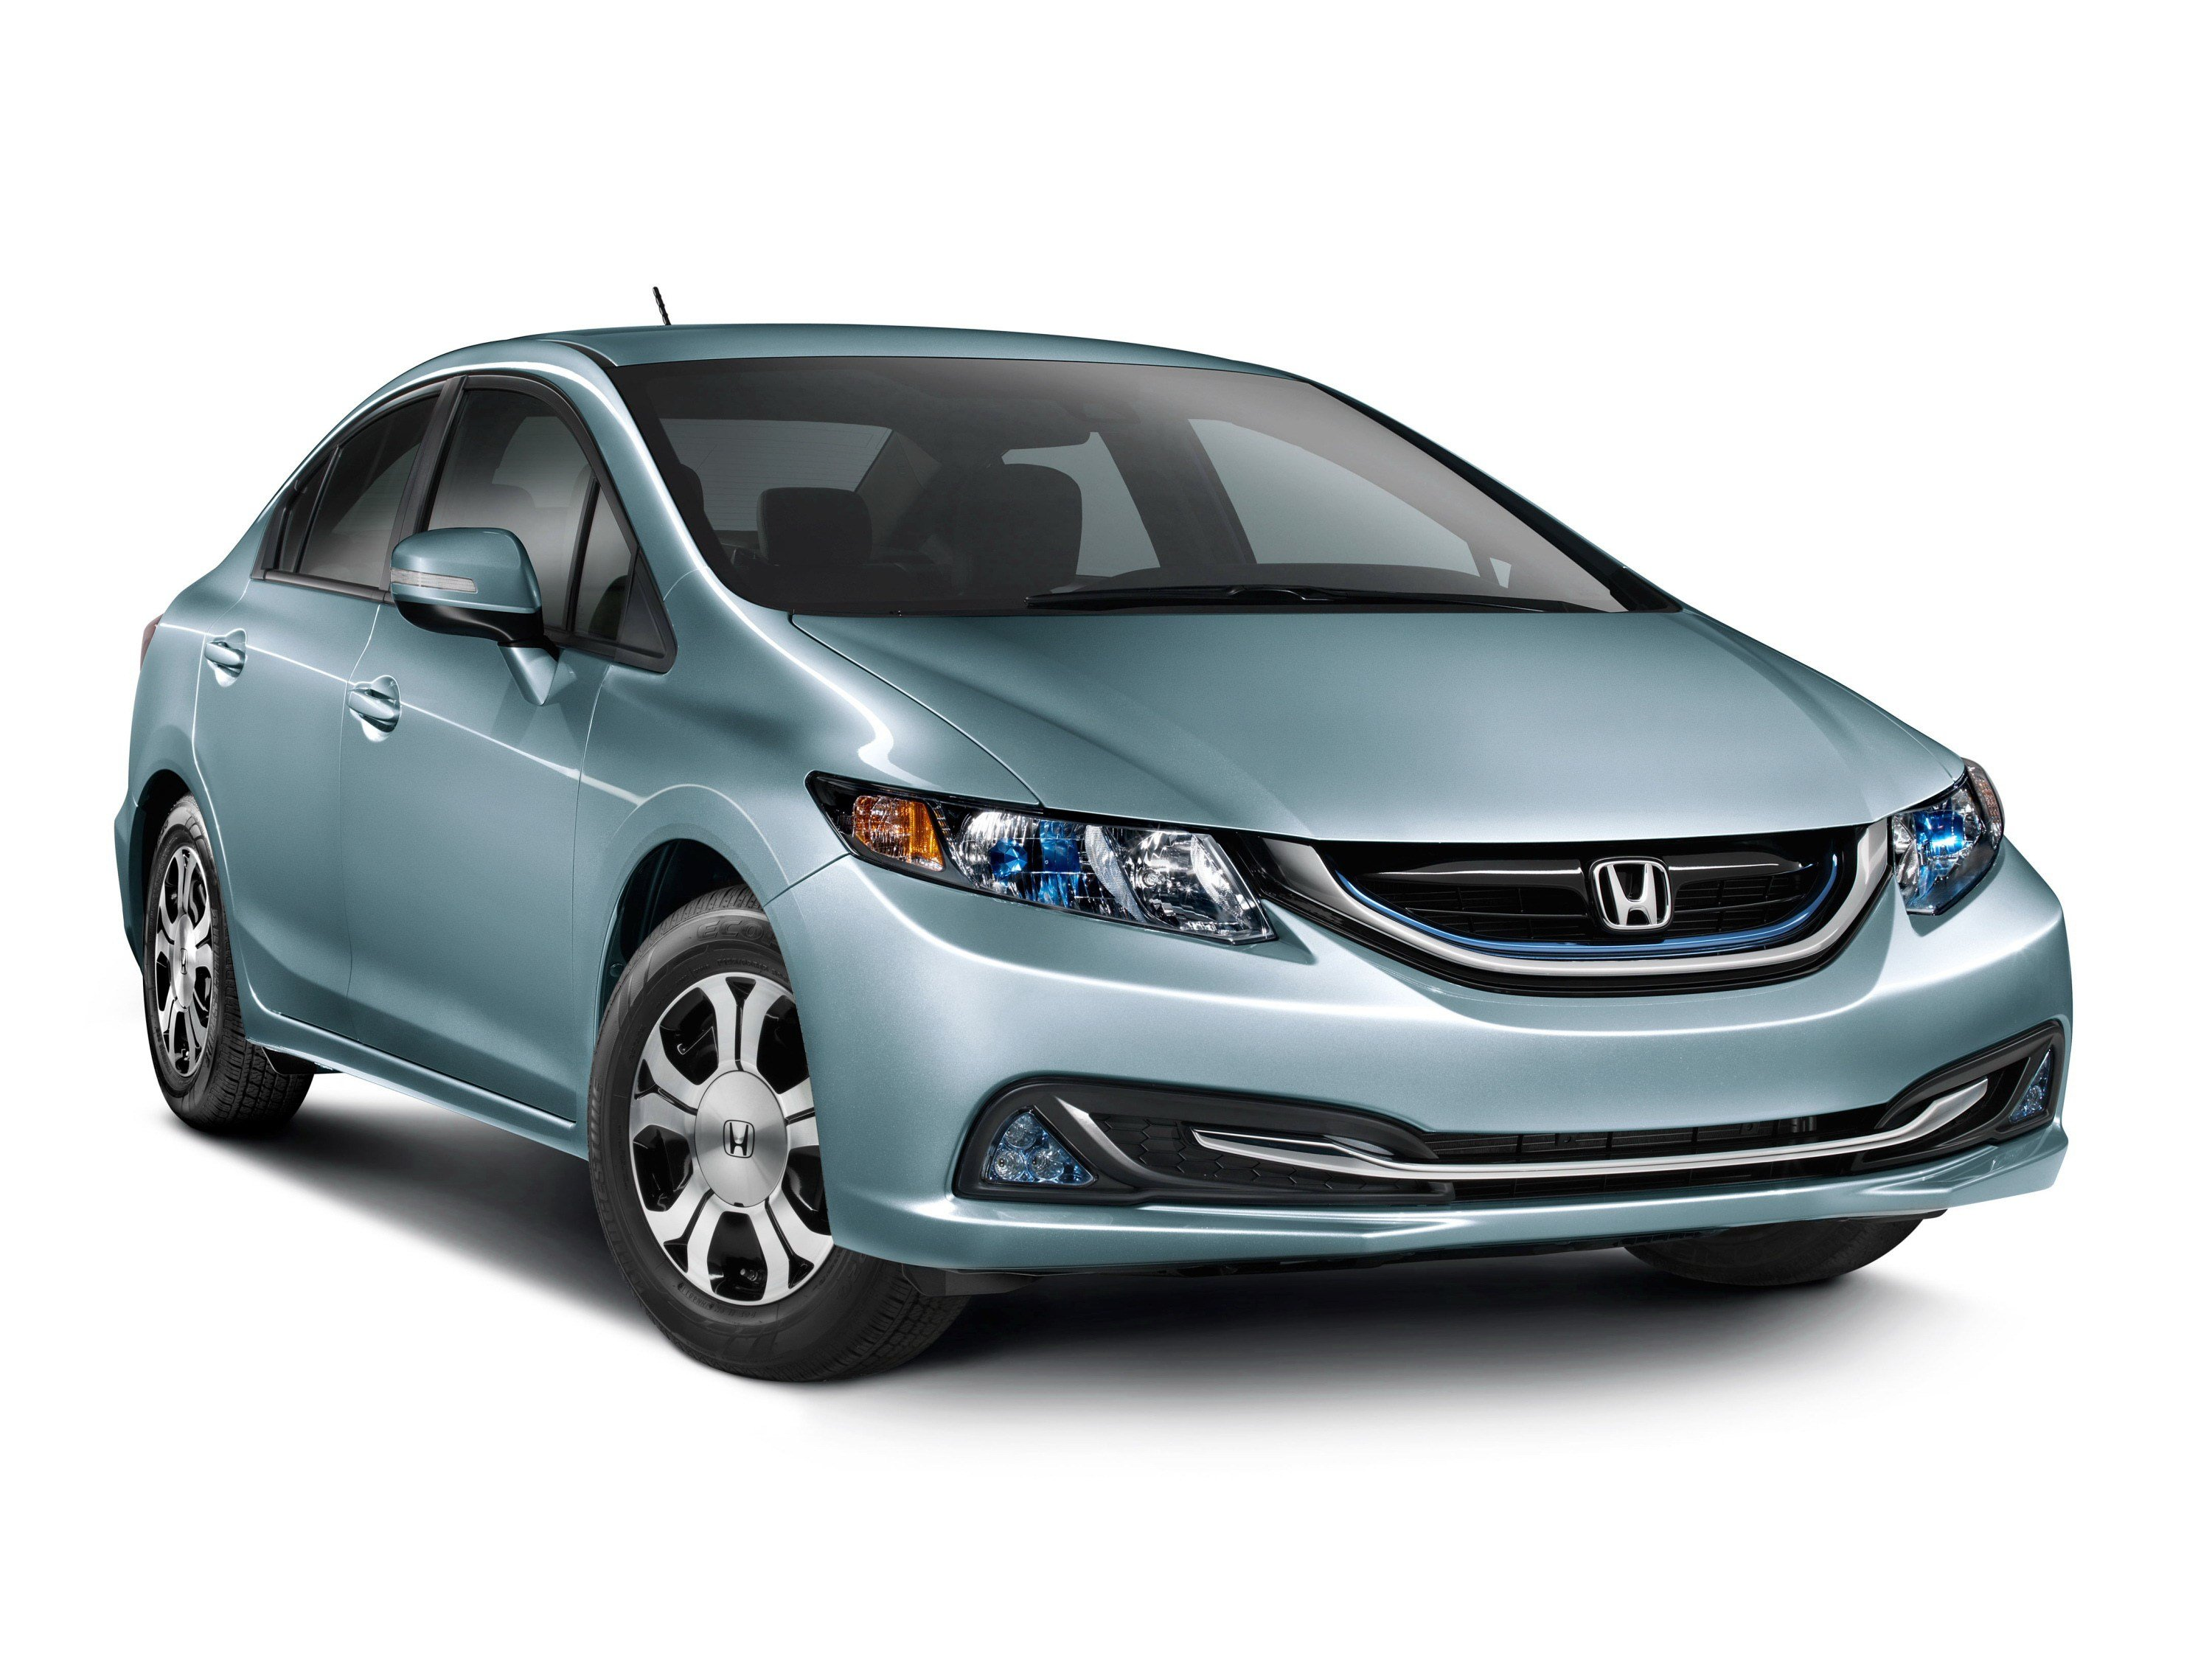 New 2014 Honda Civic Hybrid Review Top Speed On This Month